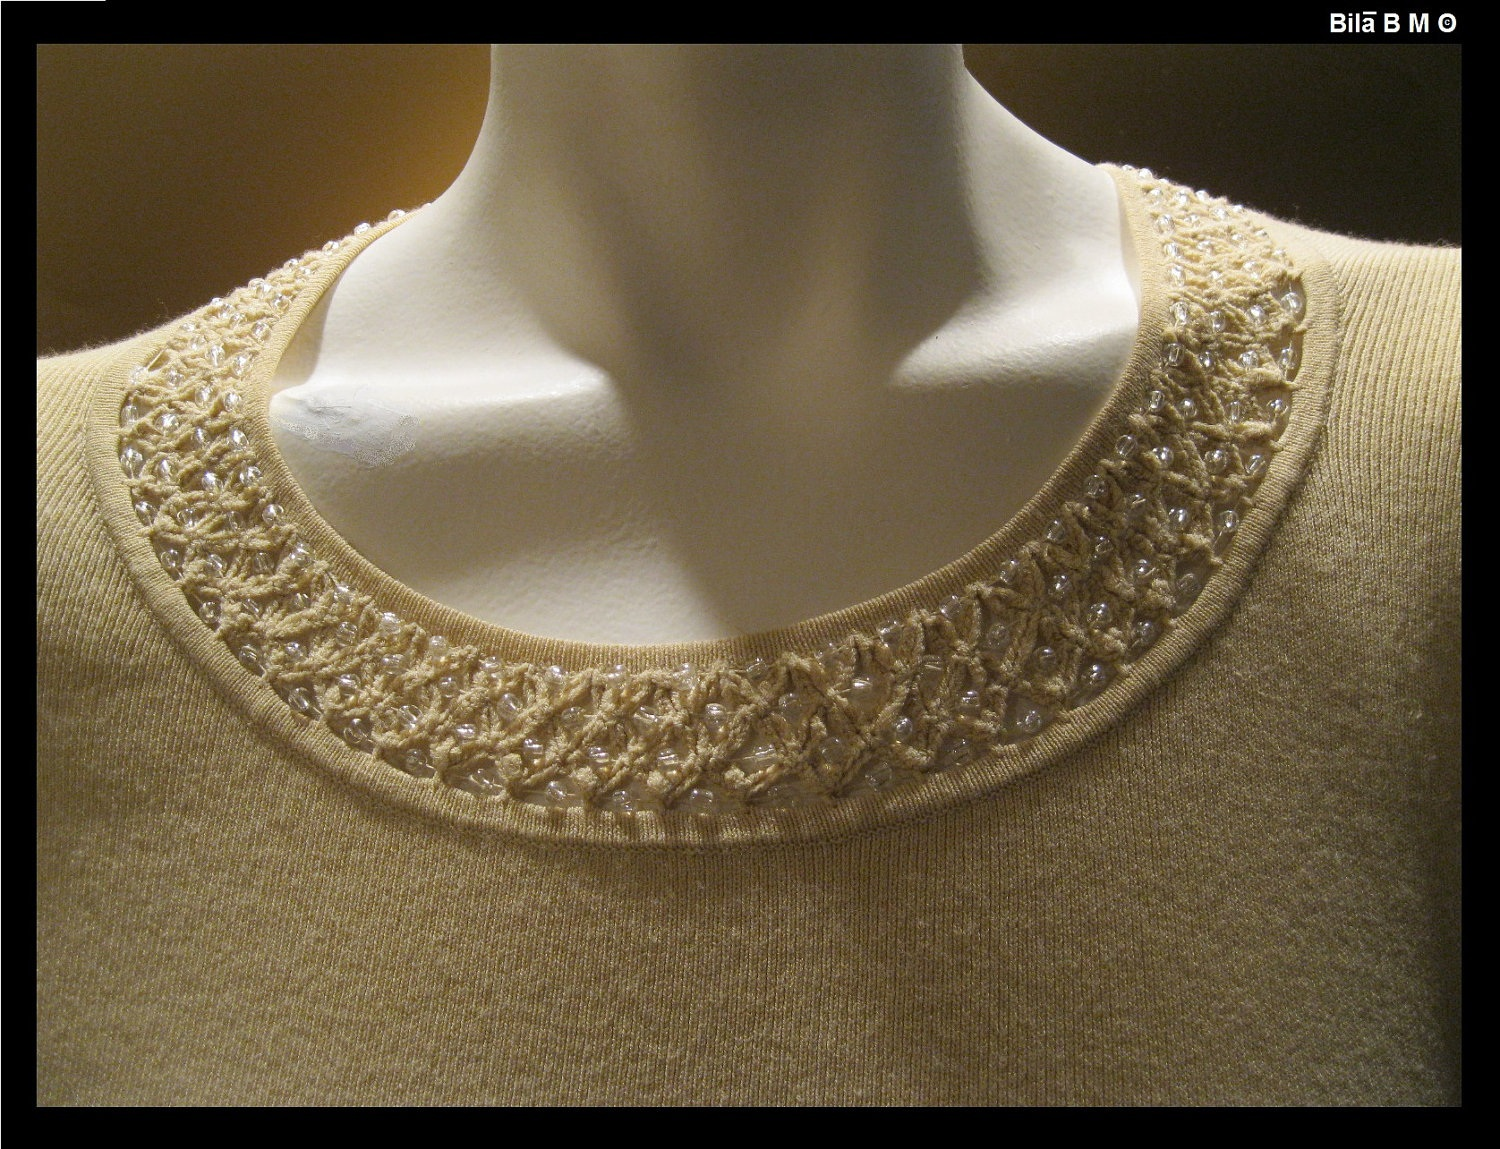 SIGRID OLSEN Knit Top with Beaded Neckline - Size Medium - FREE SHIPPING image 2